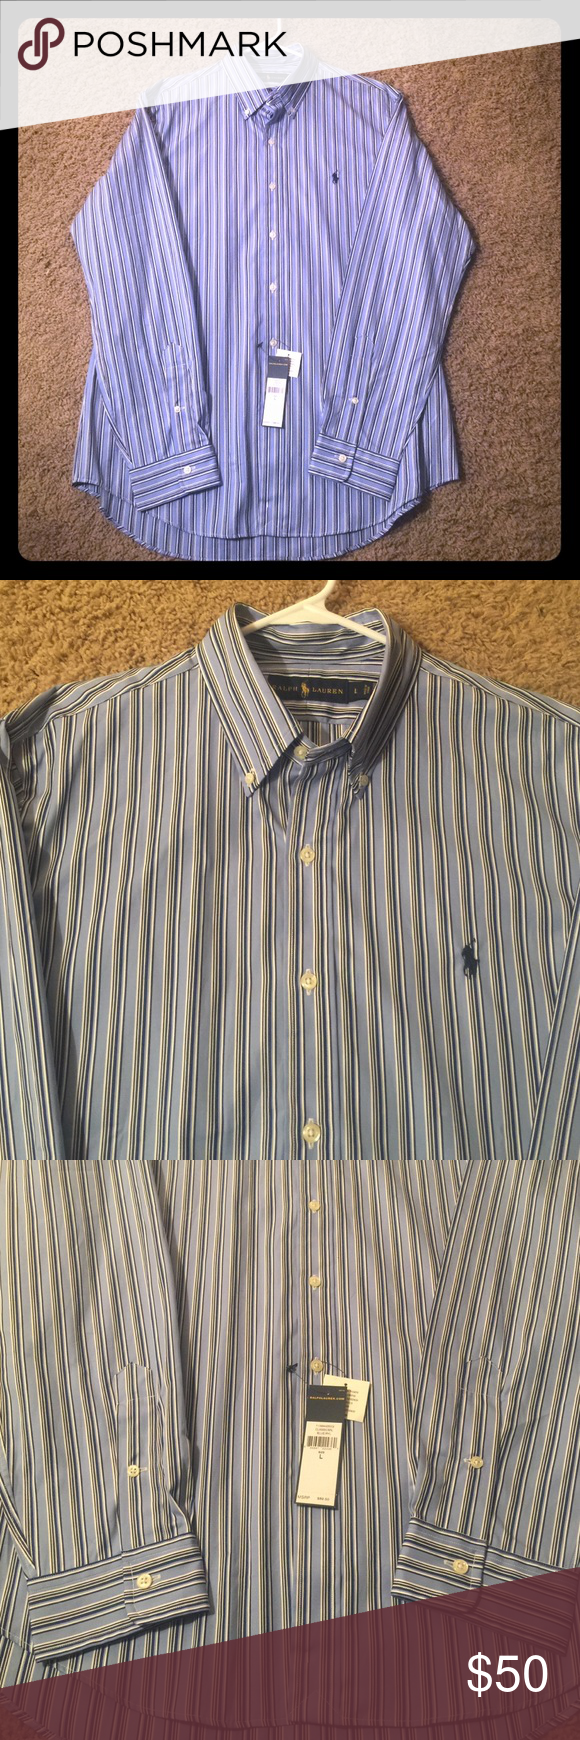 Brand NEW Men's Ralph Lauren Dress Shirt👔 Brand NEW! Tags still attached! Men's Ralph Lauren Striped Dress Shirt. Size Large! Color: BLUE/RYL. Purchased from Dillard's for my husband for $90 but he doesn't care for the stripes🙄 and I no longer have the receipt! SO it is in need of an owner who will wear it👱🏻👔 Ralph Lauren Shirts Dress Shirts